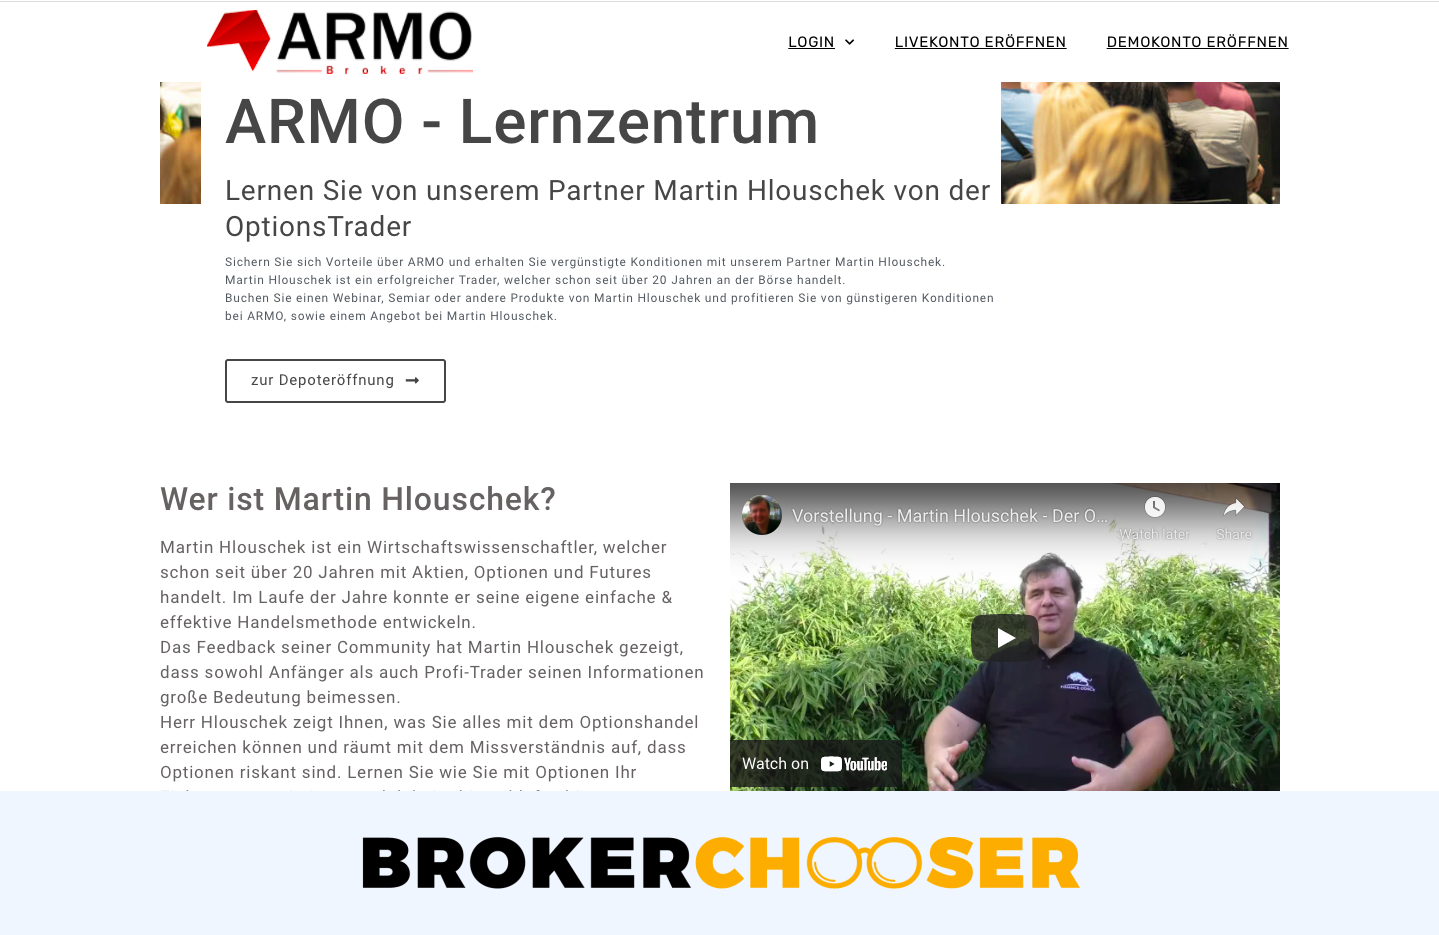 ARMO Broker review - Education